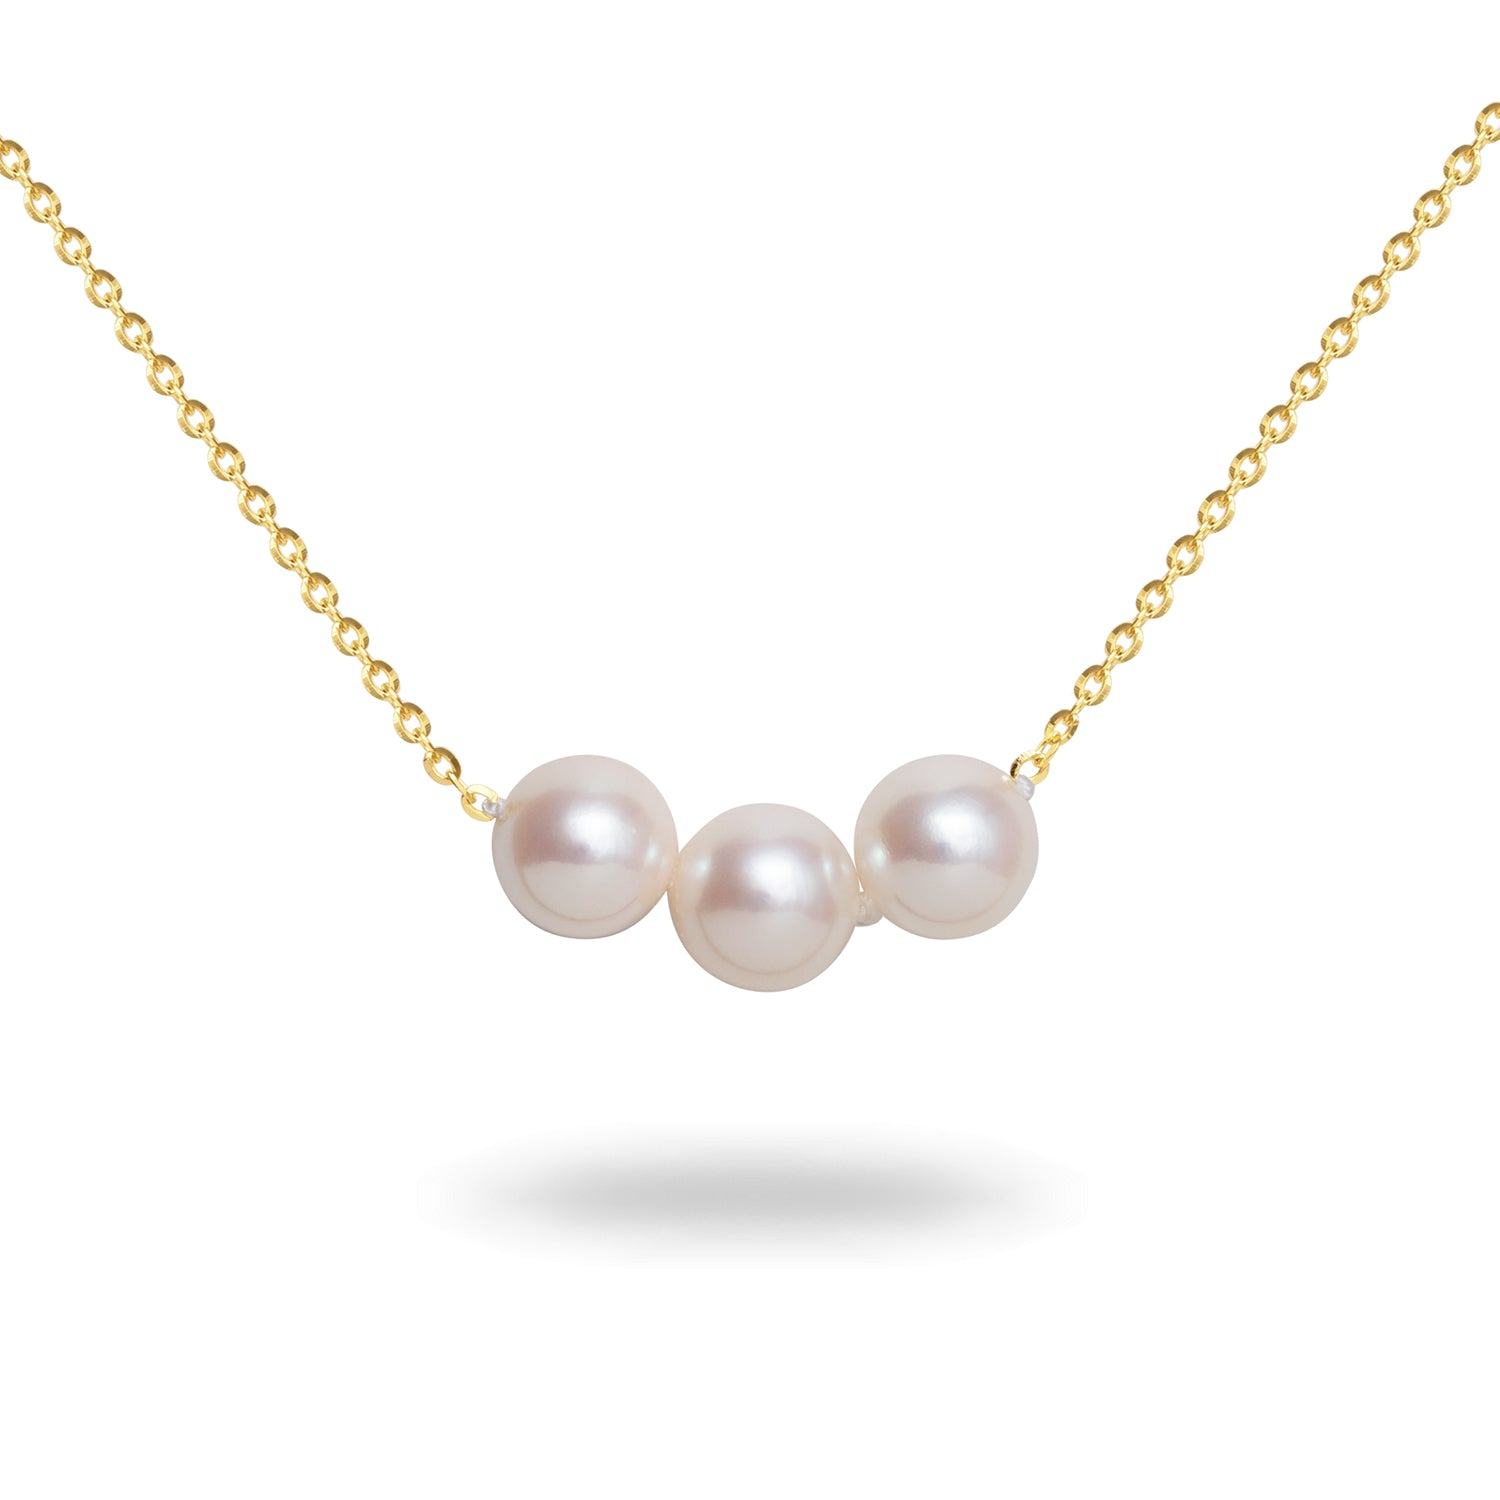 8-8.5mm White Akoya Cultured Pearl Necklace